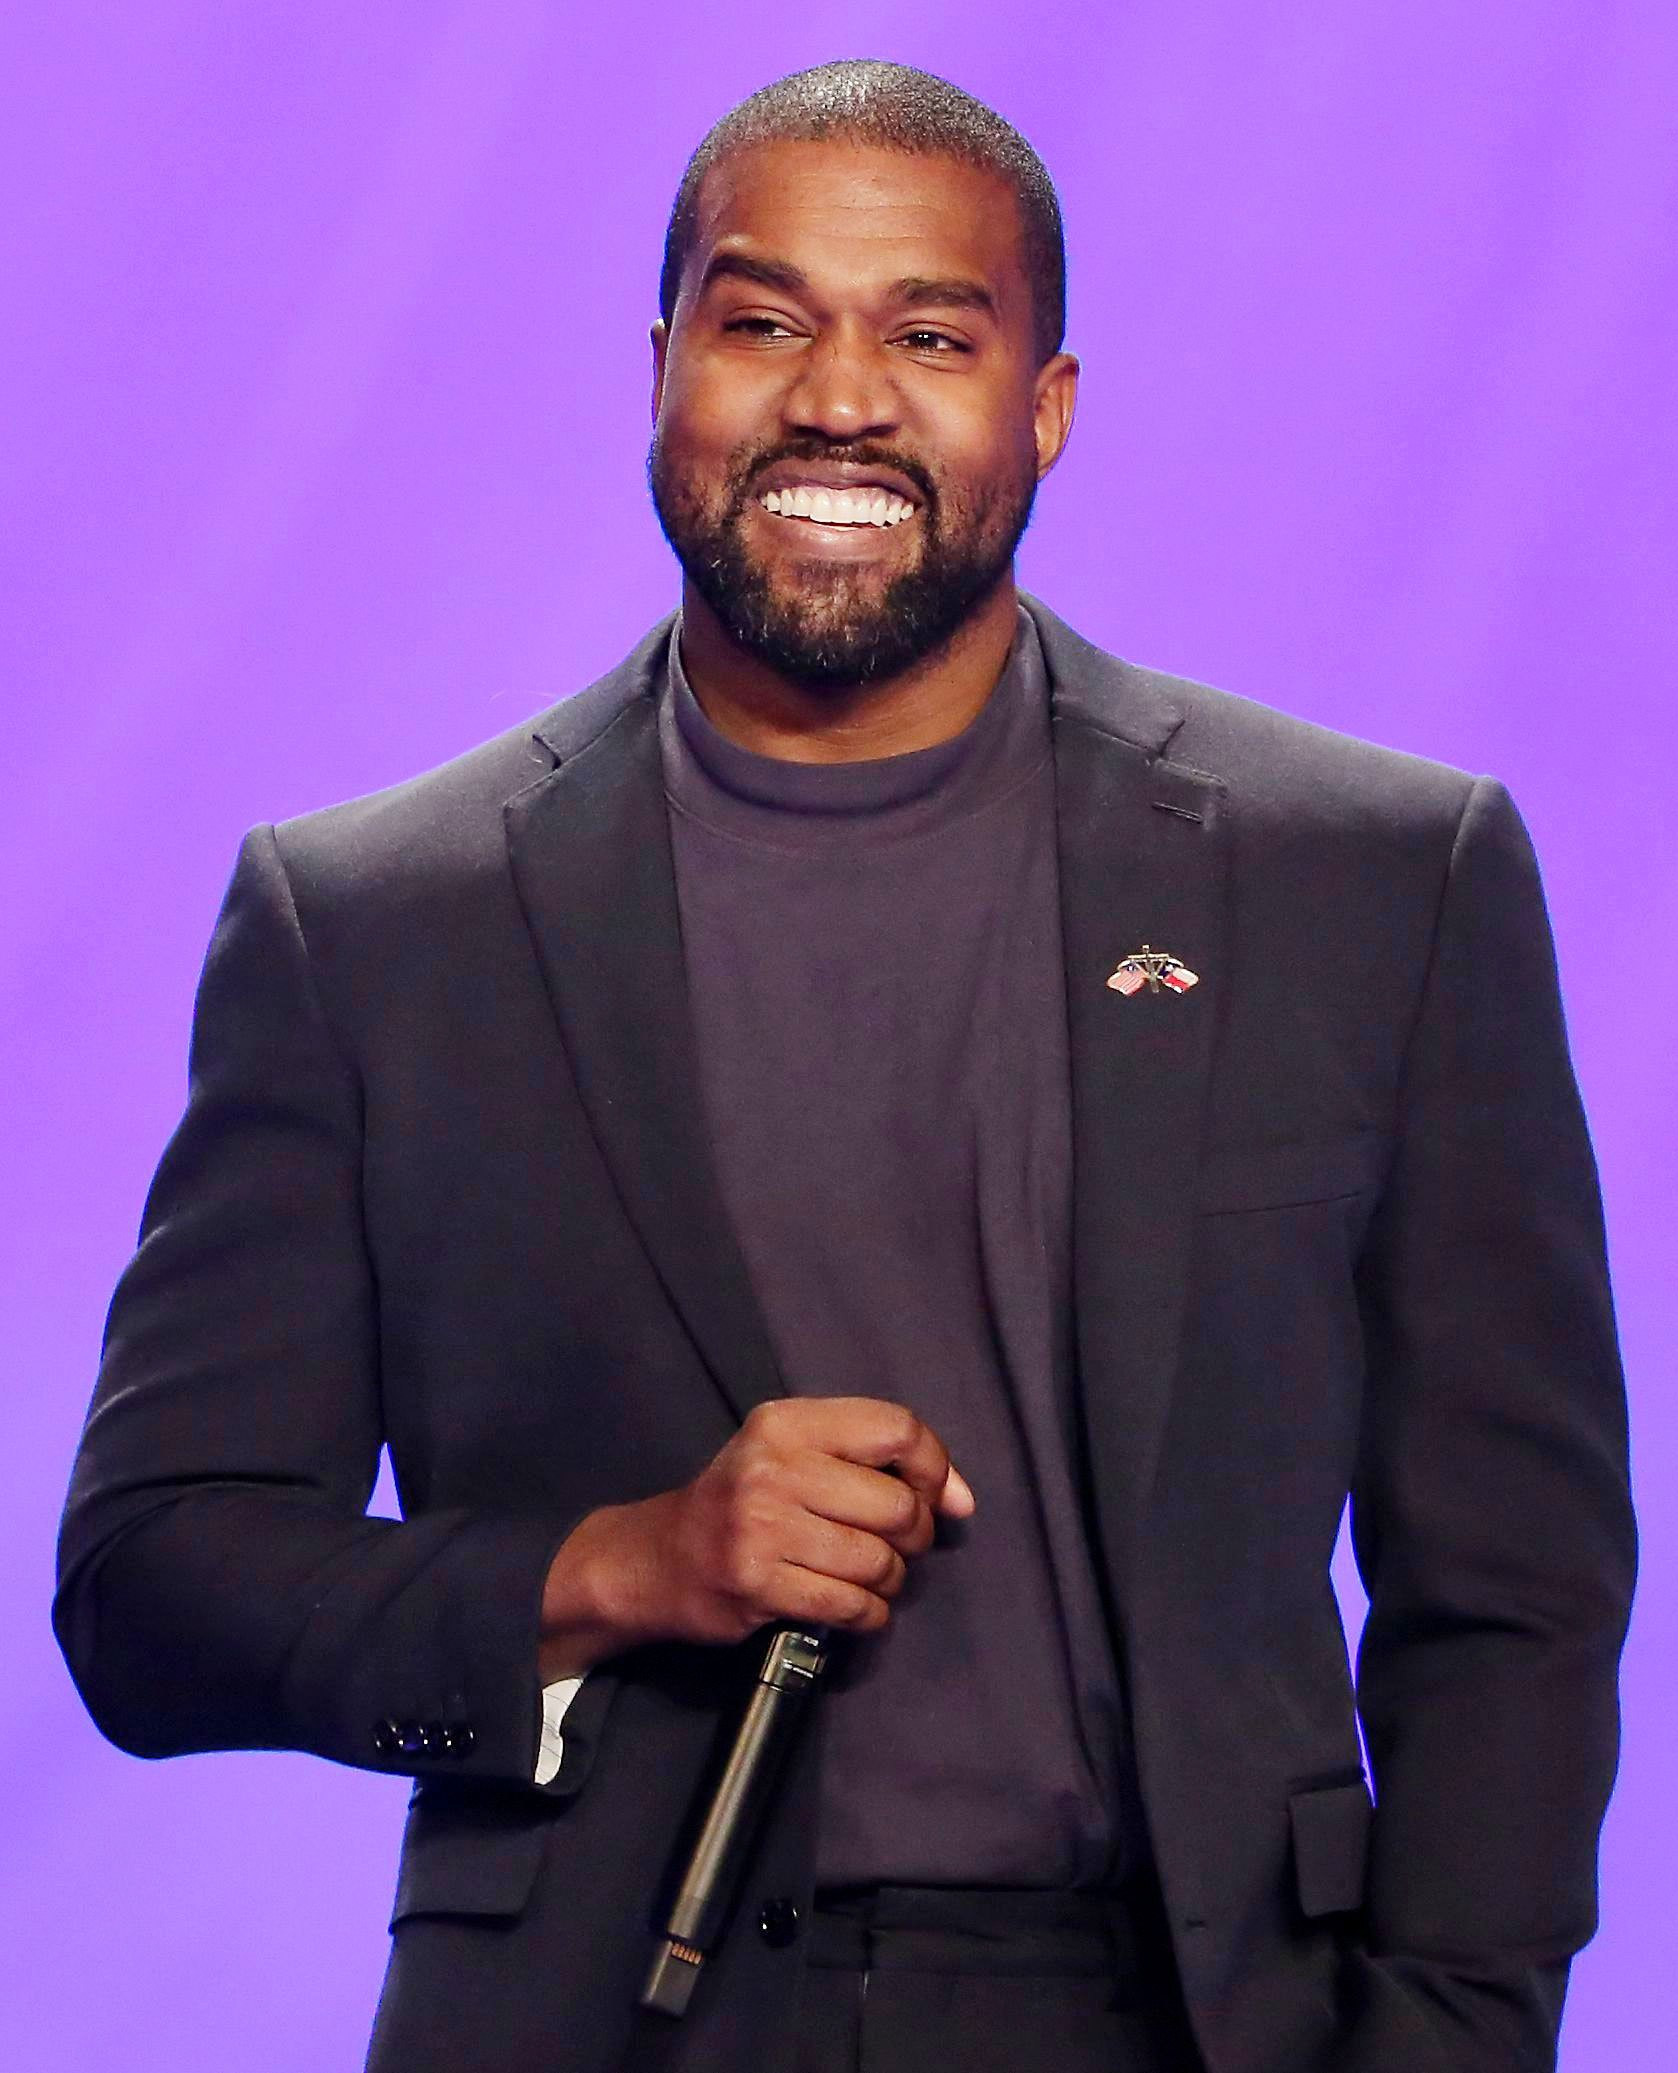 Kanye West becomes the wealthiest black man in American history with net worth of $6.6 Billion